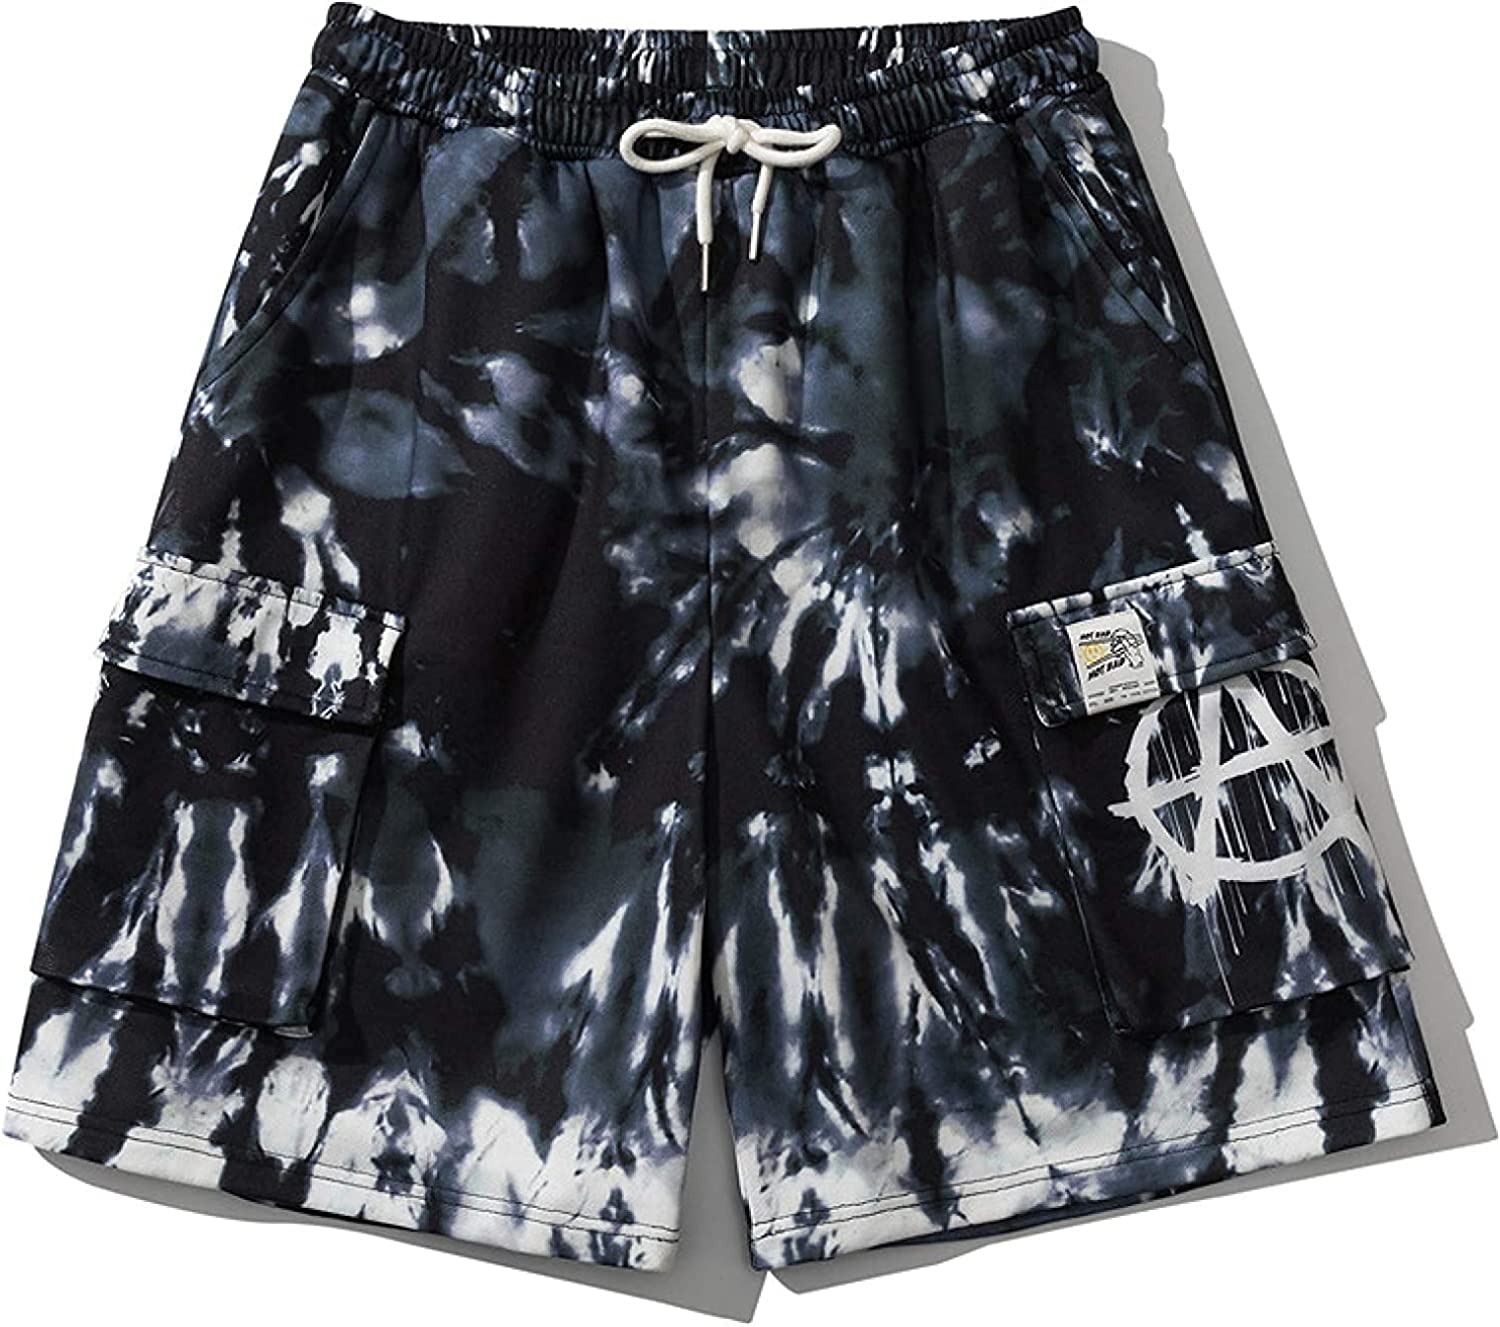 Men's Relaxed Tie-dye Printed Cargo Shorts Fashion Trend Streetwear Comfortable